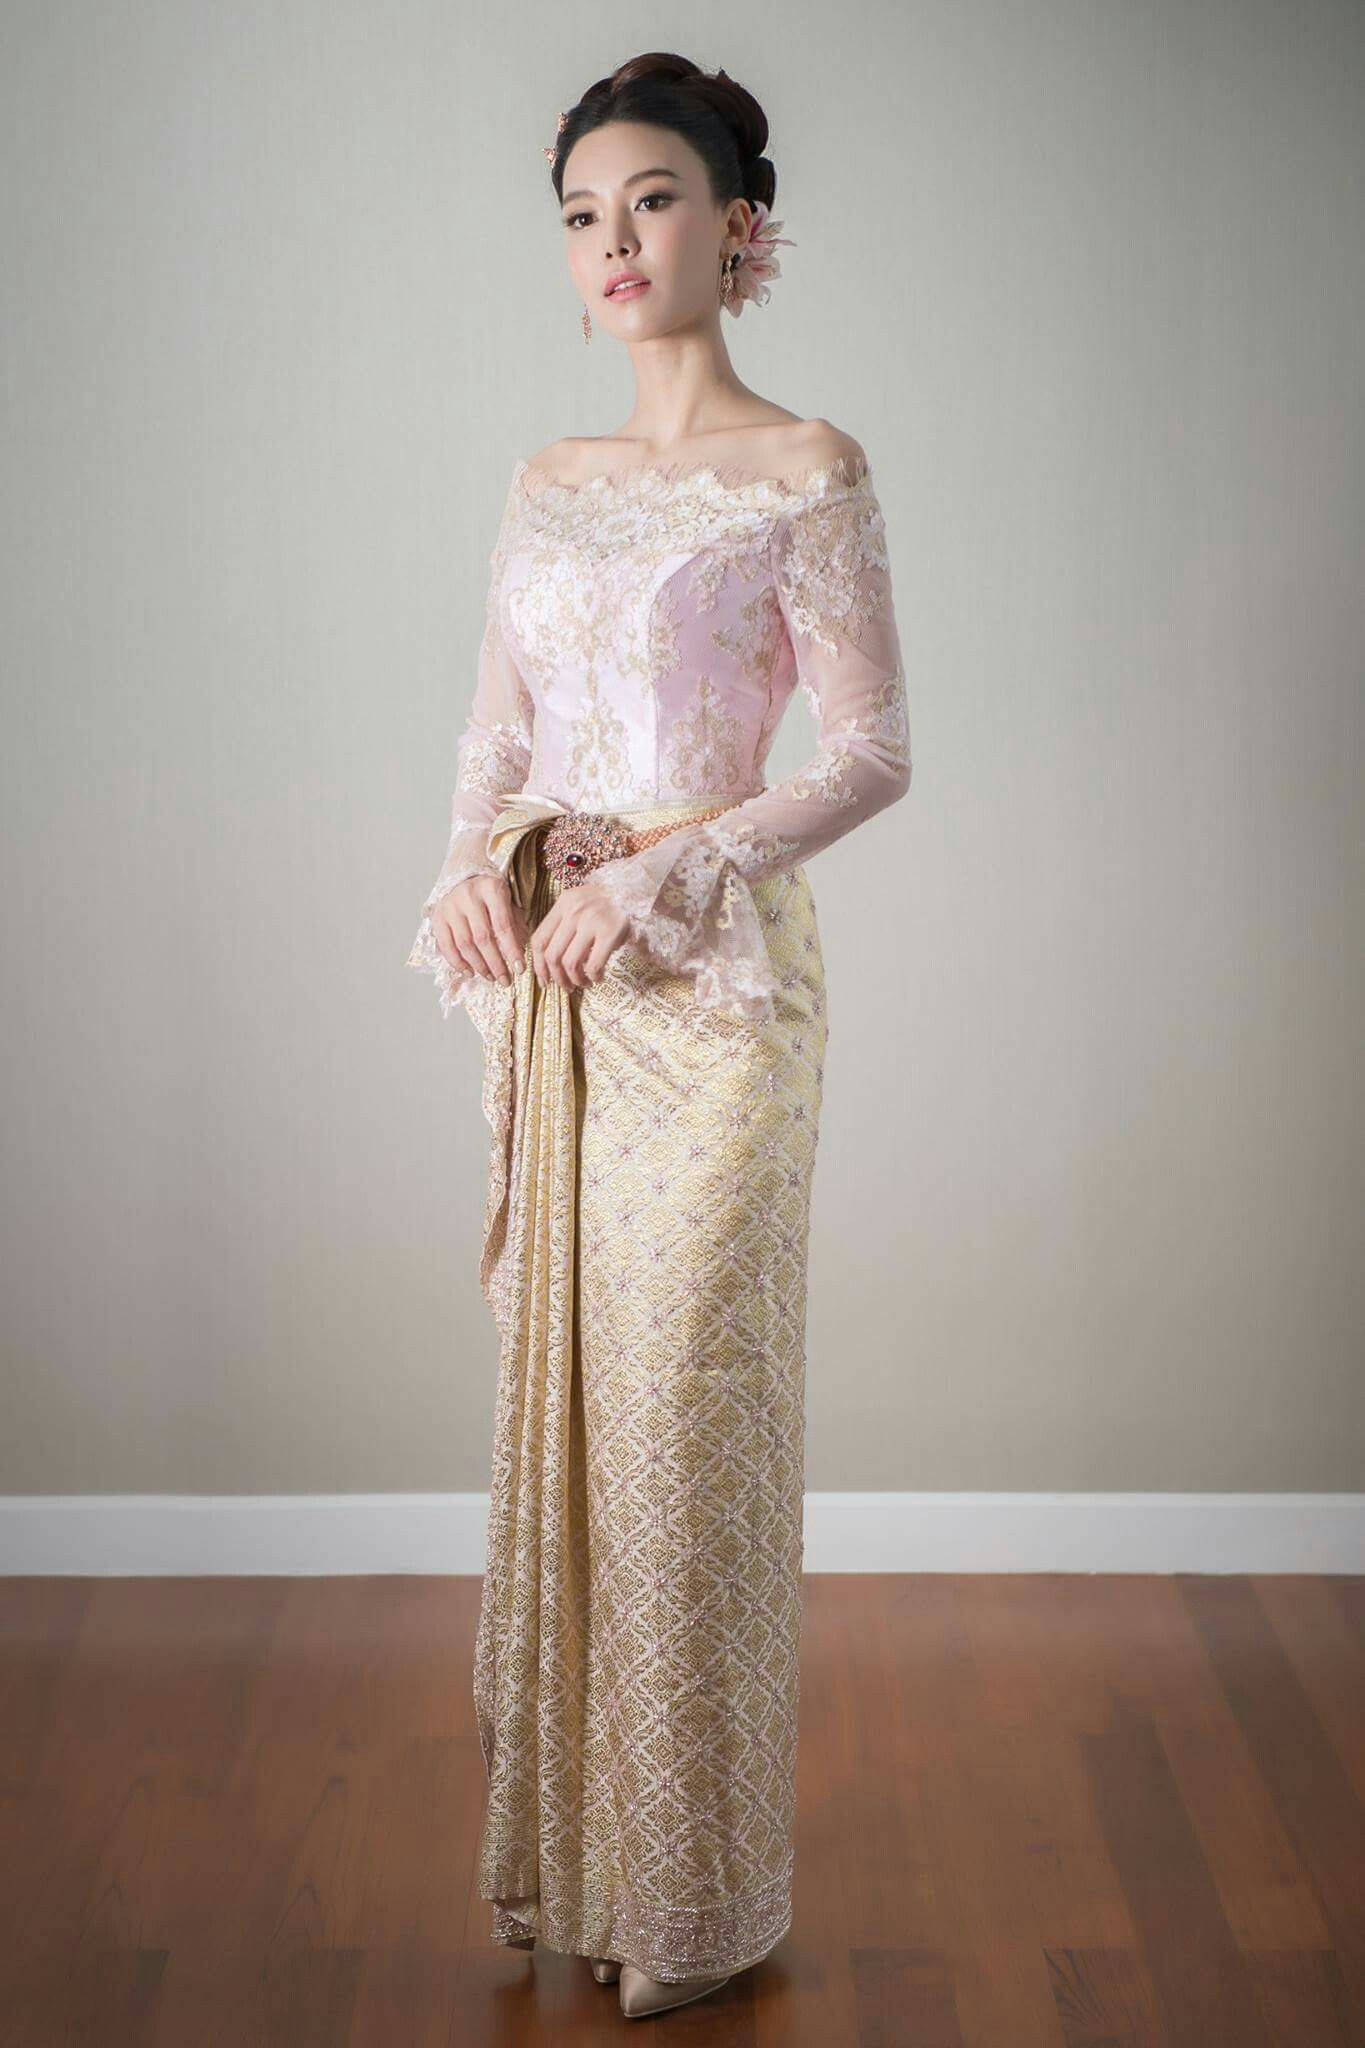 Pin by bels on i dream of thai pinterest kebaya nice and thai dress